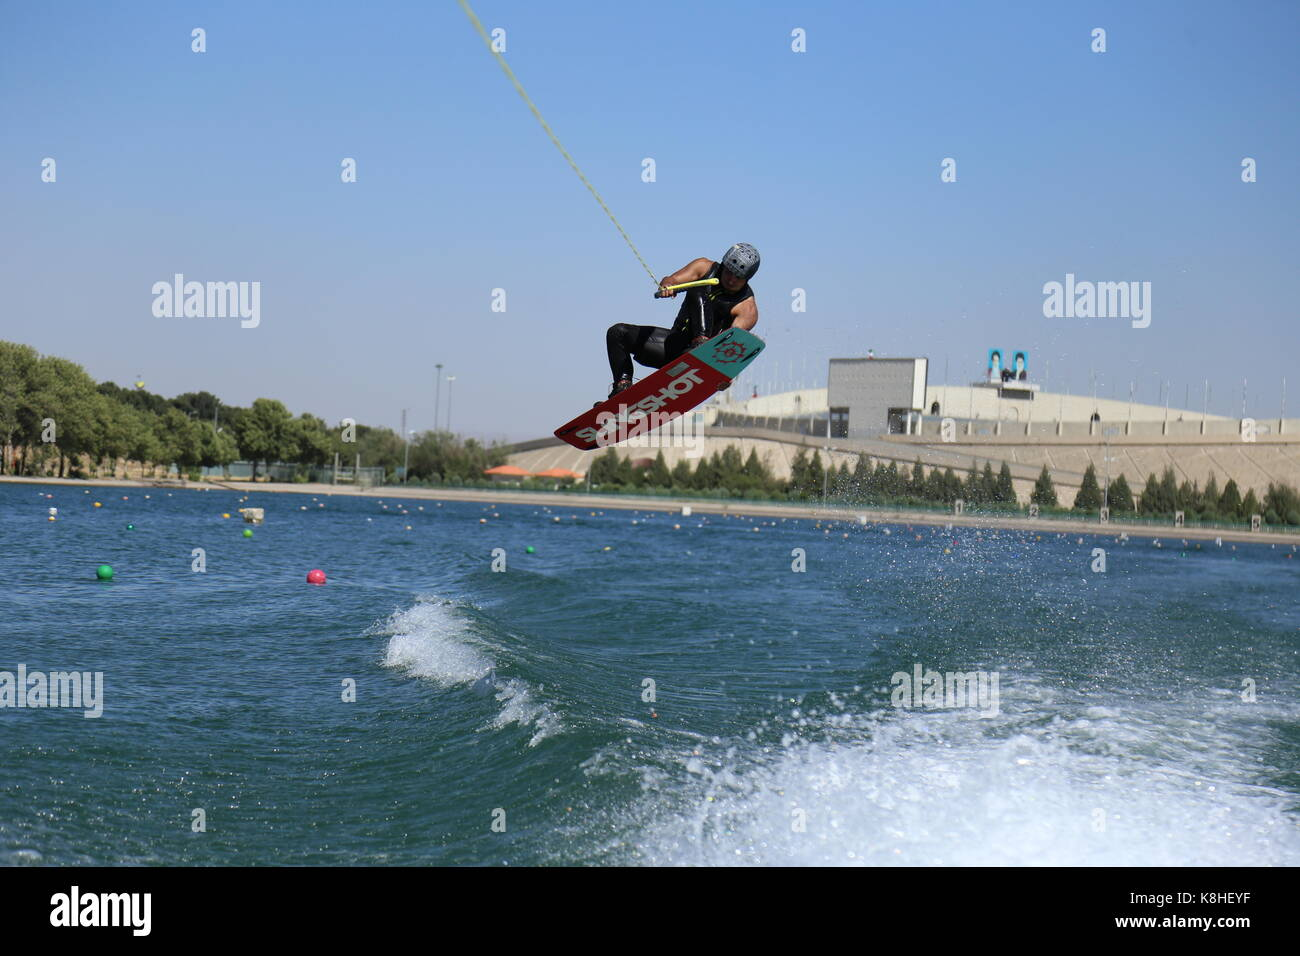 Wakeboarding tail grab - Stock Image